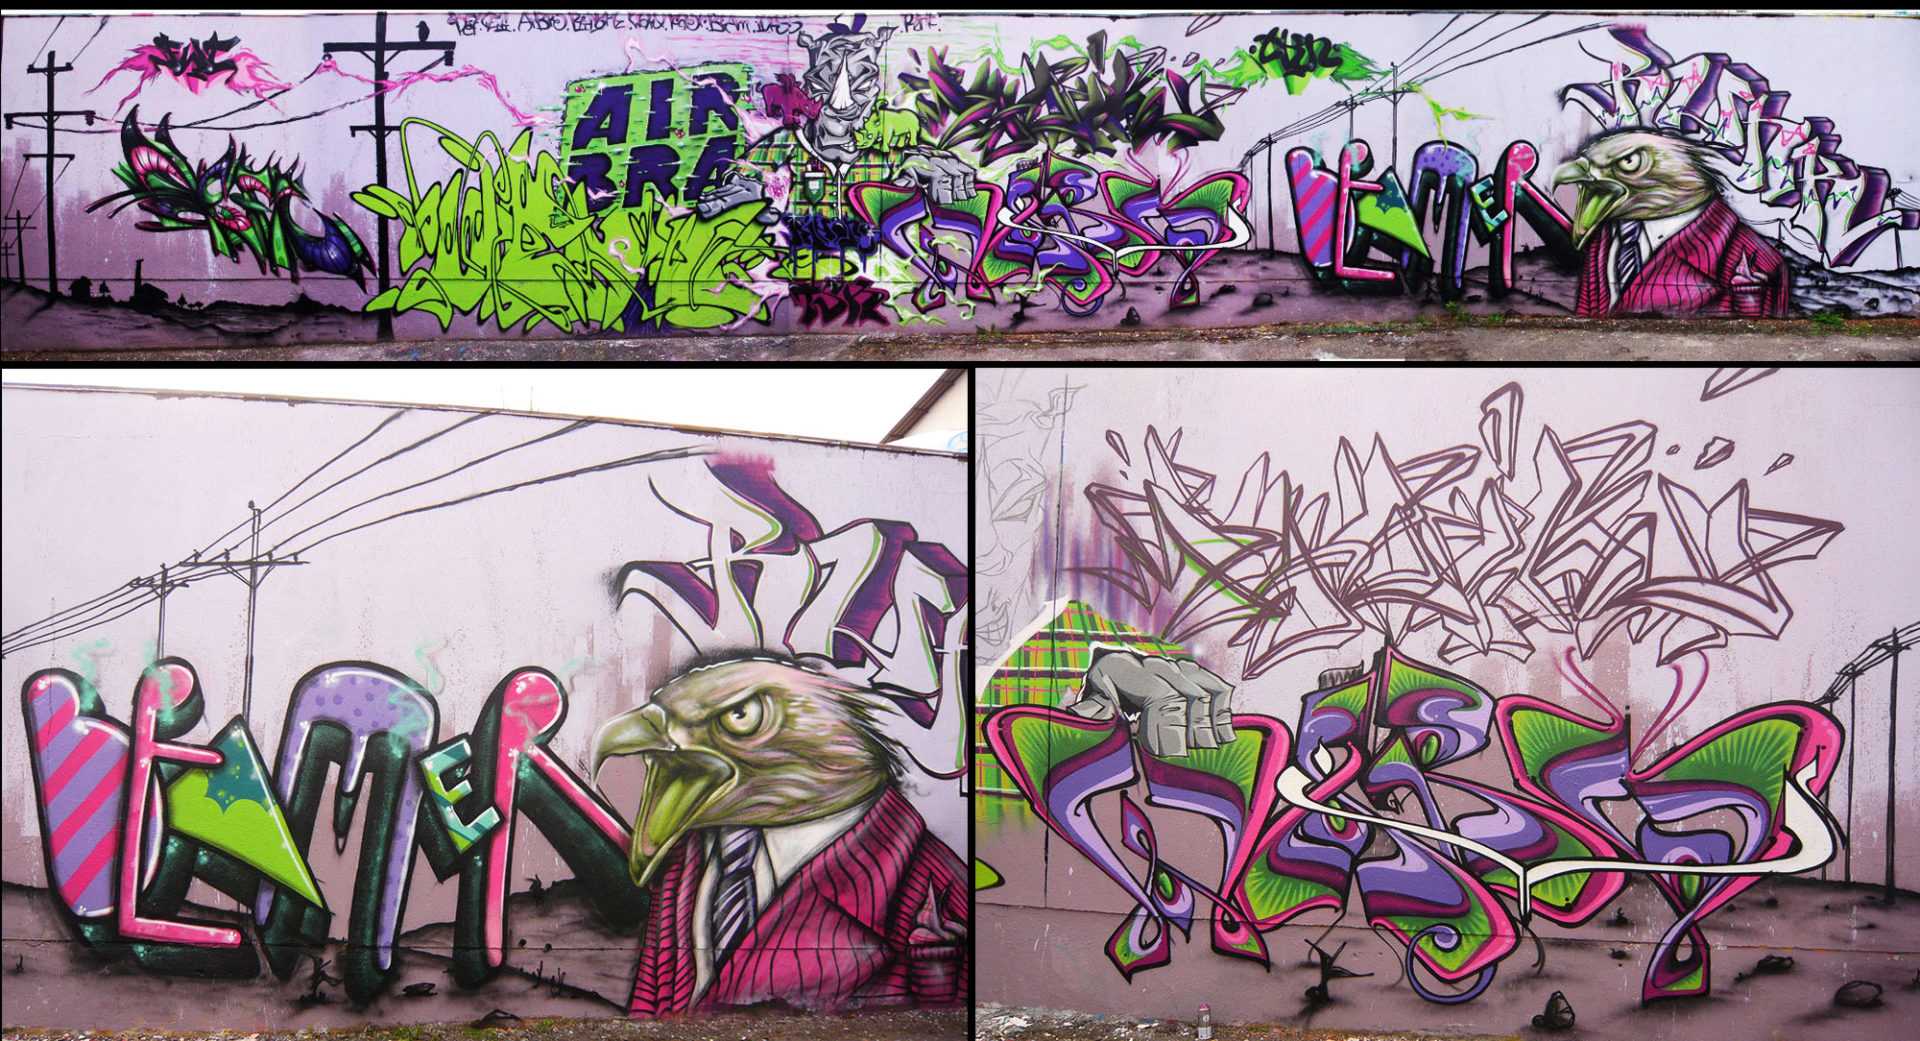 Fresque Graffiti - Riom